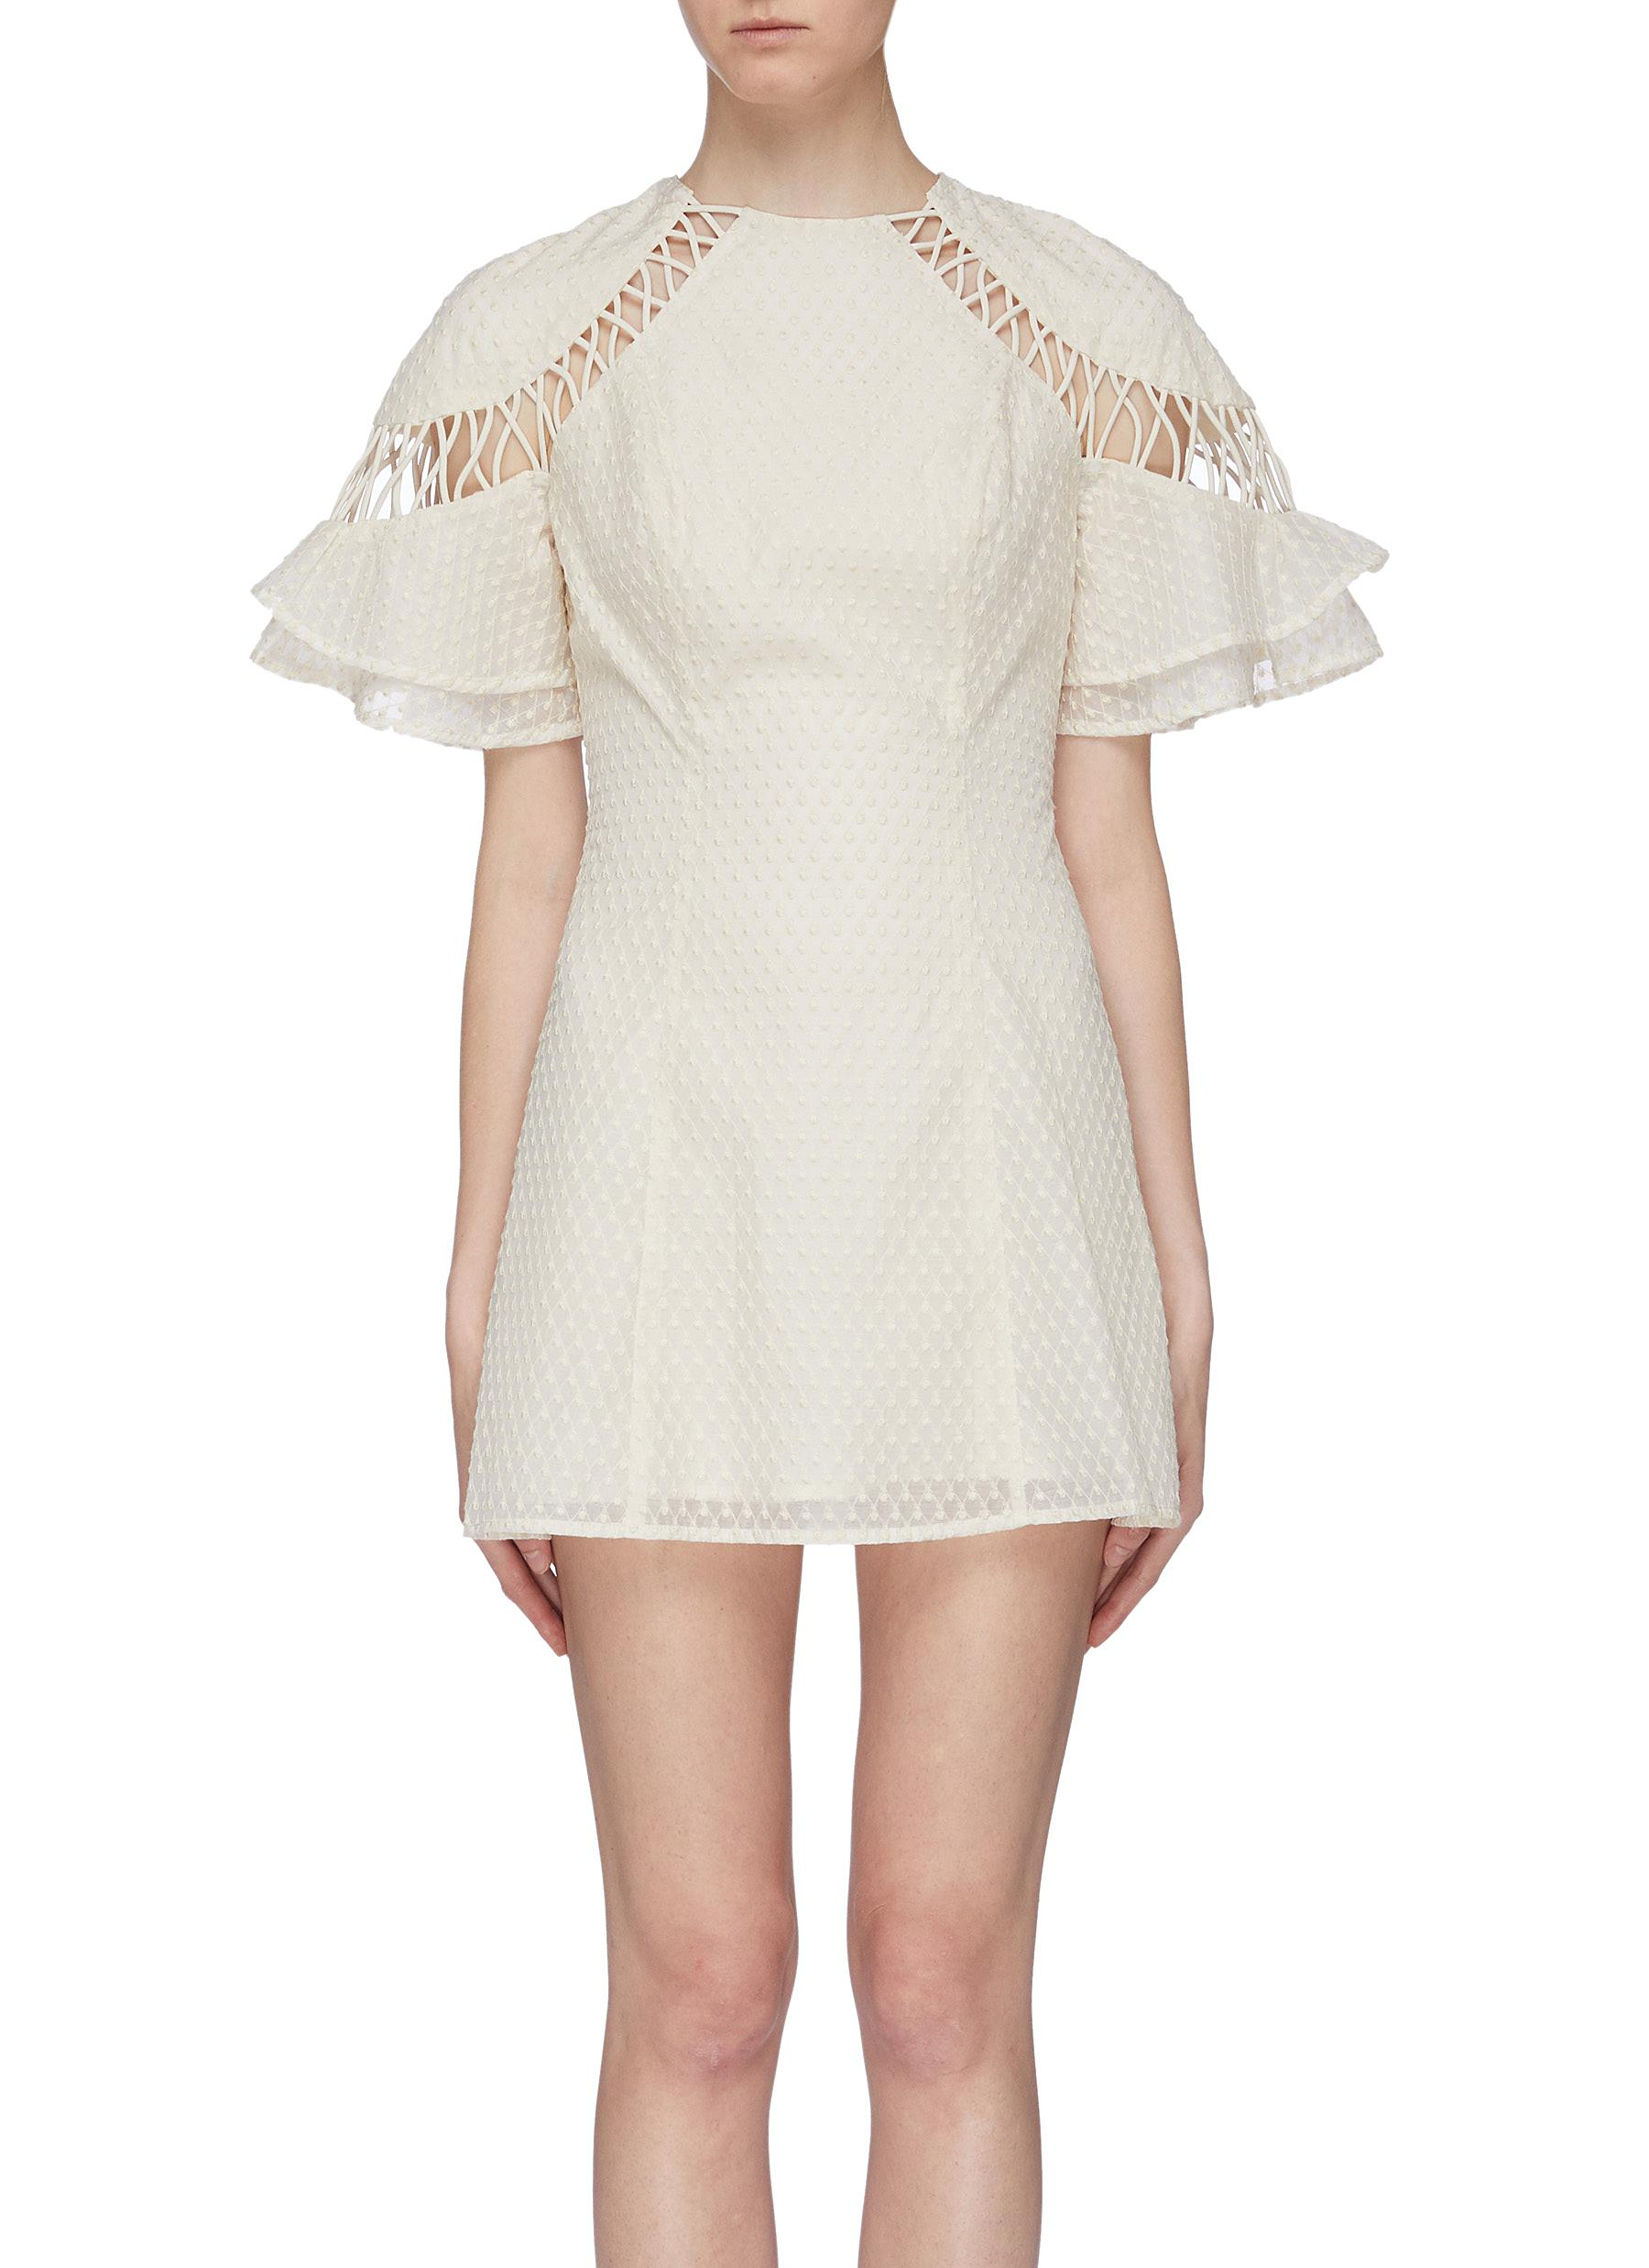 Talk This Over embroidered dot cutout ruffle sleeve dress by C/Meo Collective